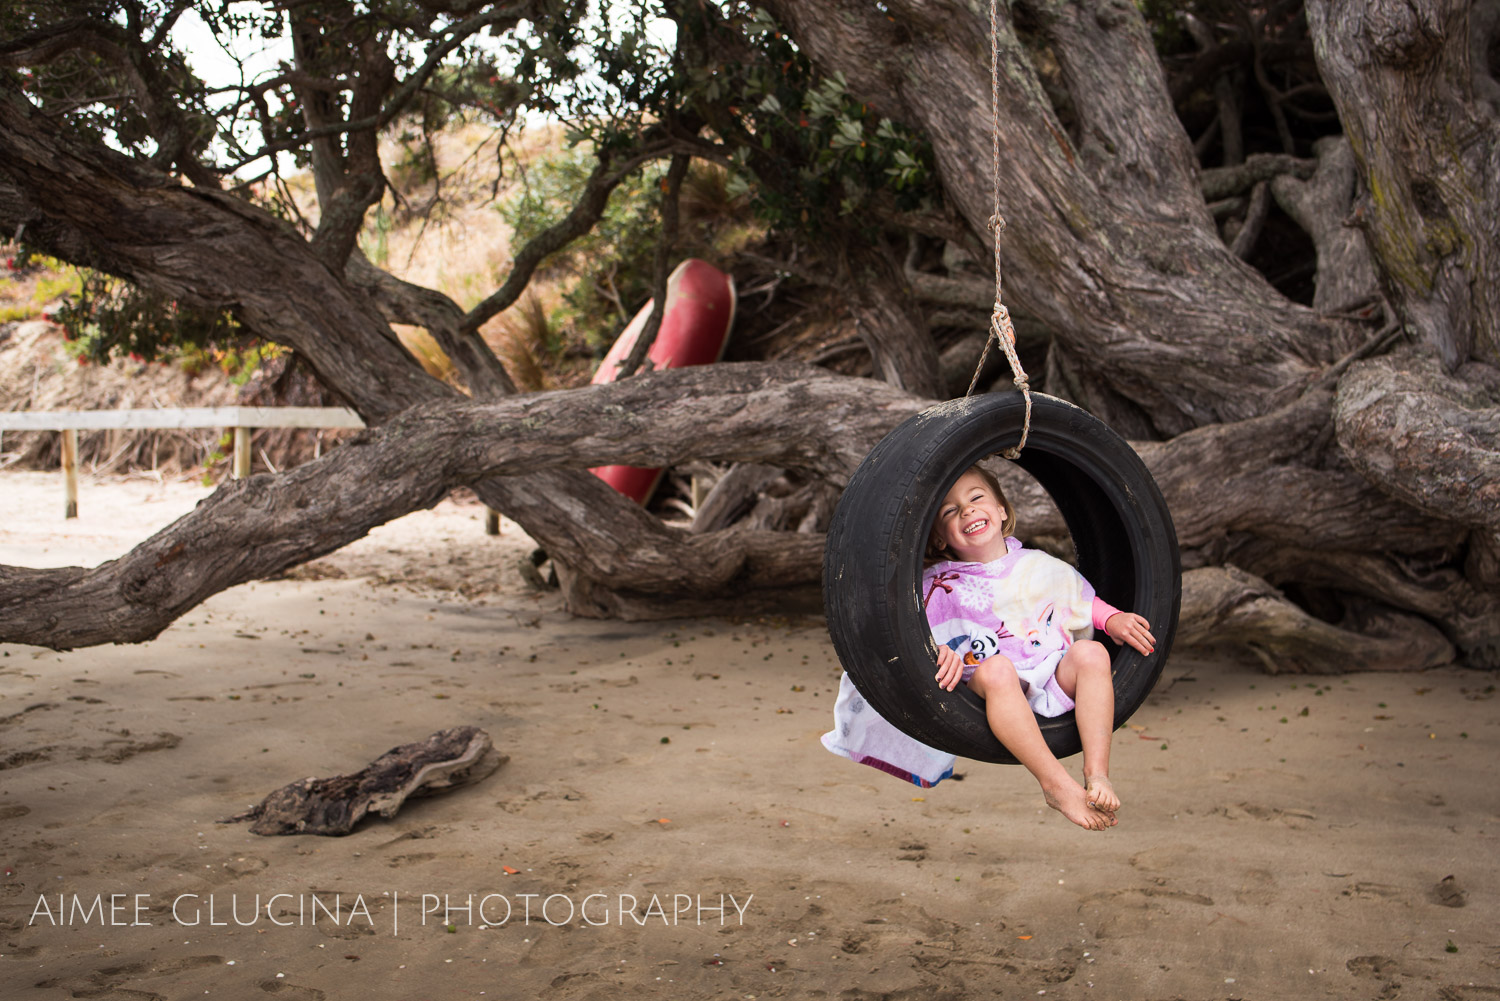 What says kiwi summer more than a tyre swing in a pohutukawa tree?  Here the shade of the tree cuts down the harsh mid day sun so we can get a nice evenly lit shot.